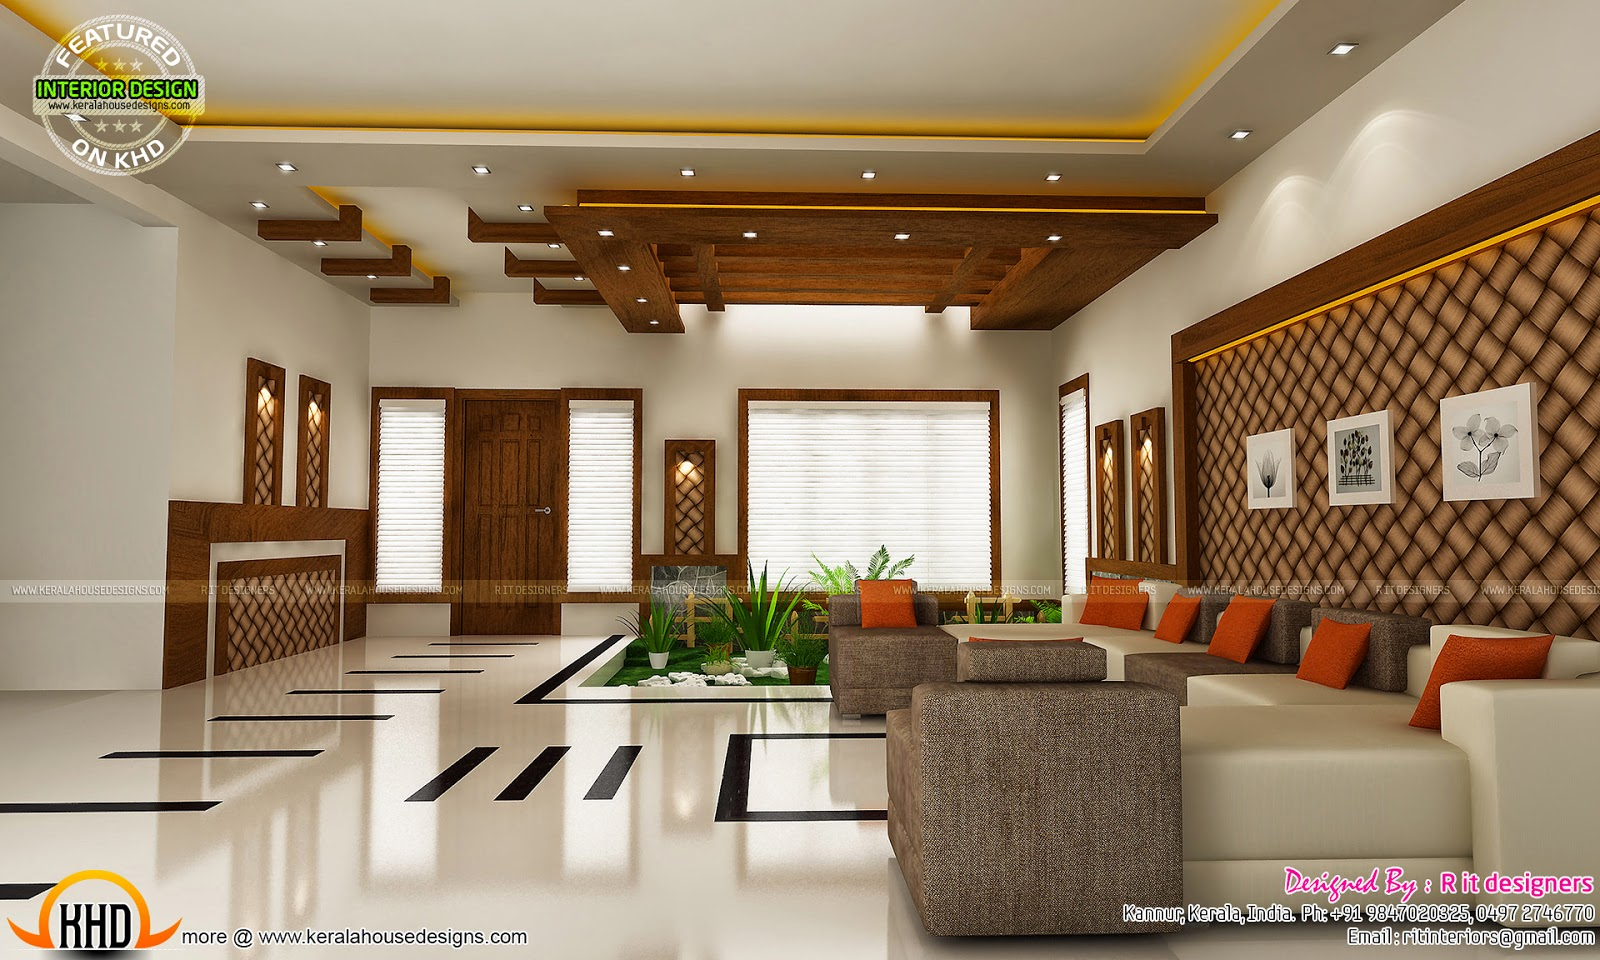 Modern and unique dining kitchen interior kerala home for Drawing room interior design photos